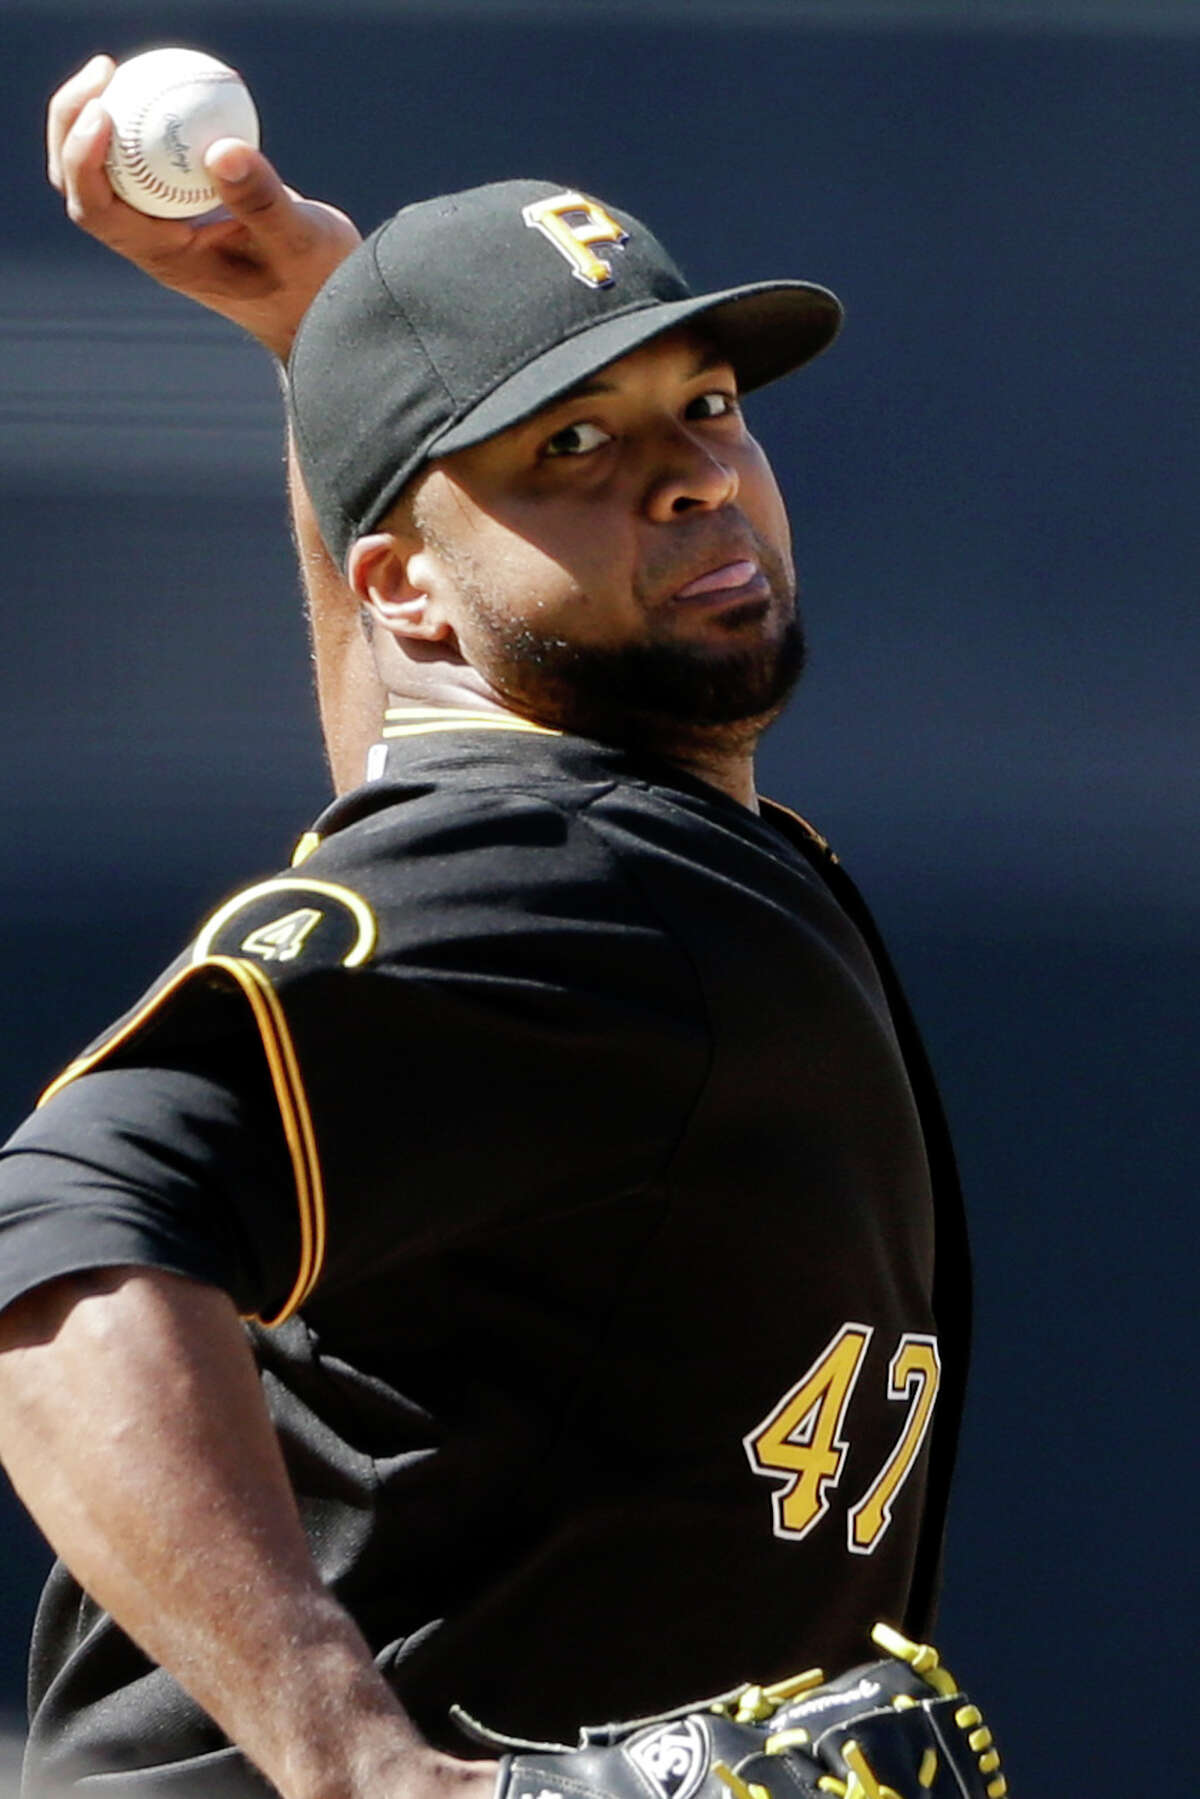 Pittsburgh Pirates starting pitcher Francisco Liriano pitches to a San Diego Padres batter during the first inning of a baseball game Wednesday, June 4, 2014, in San Diego. (AP Photo/Gregory Bull) ORG XMIT: CAGB104